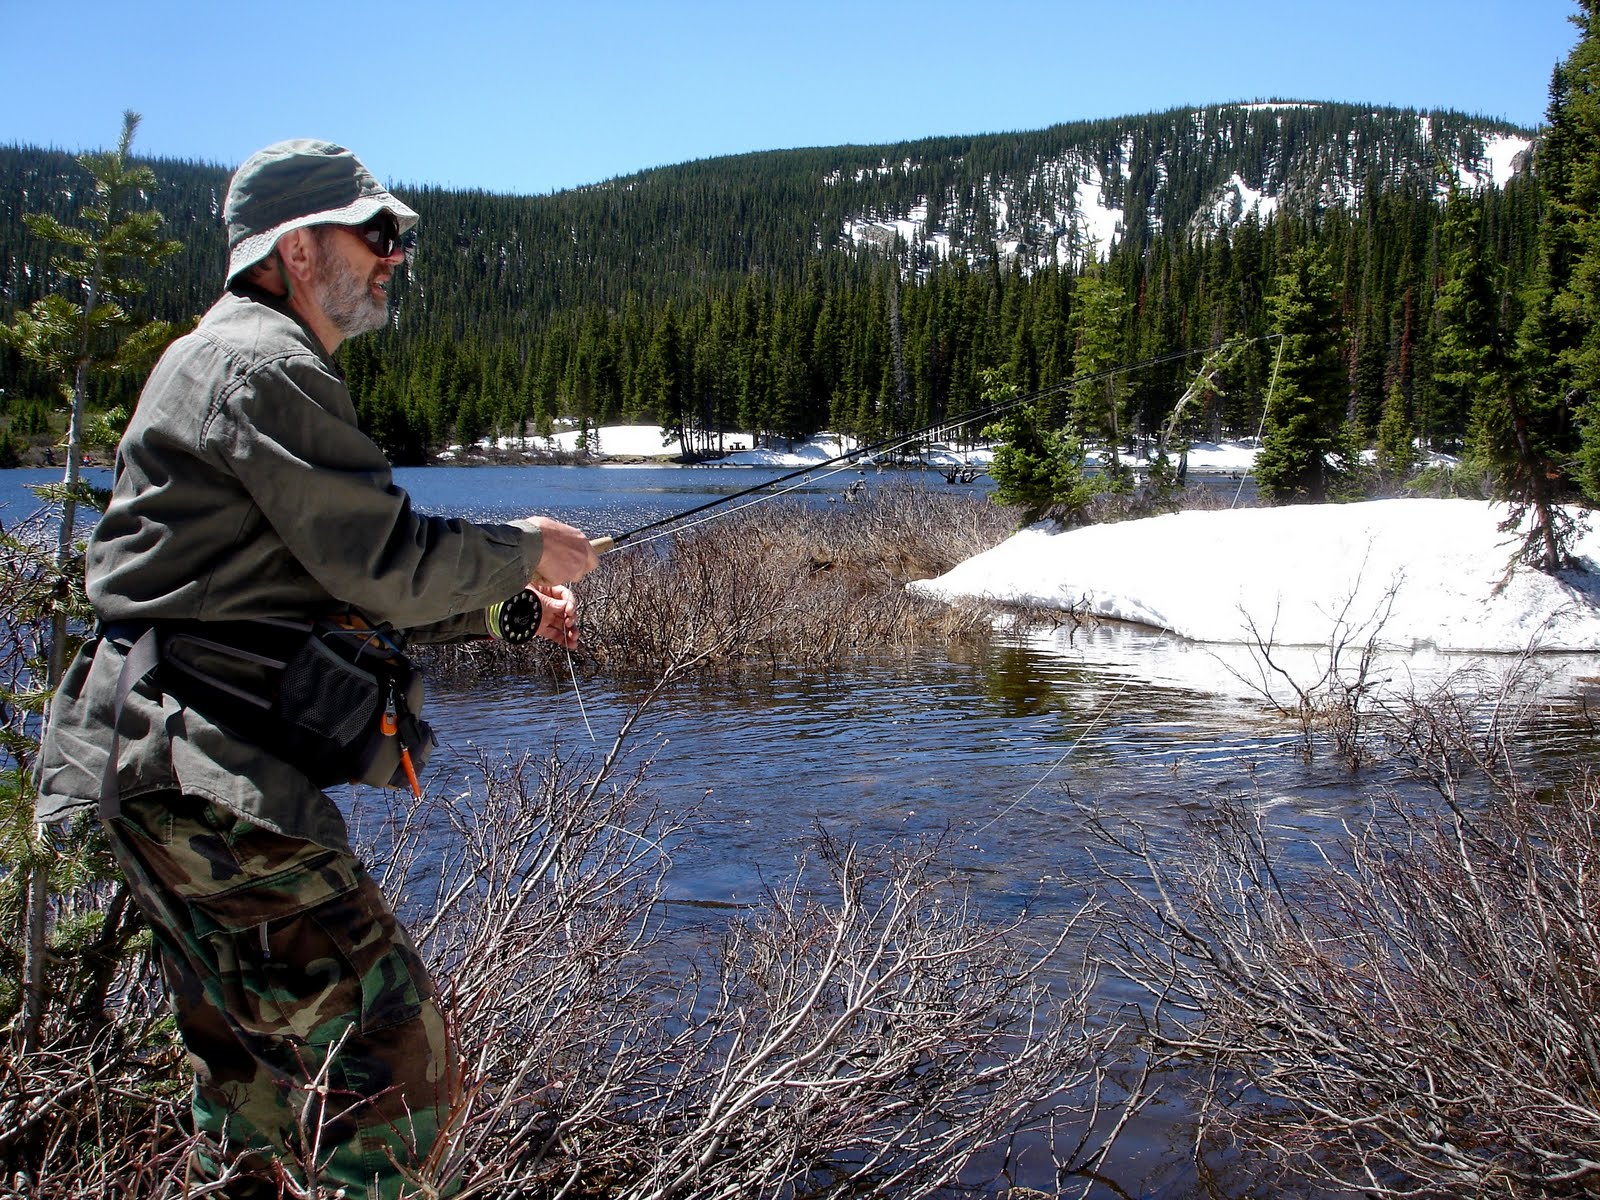 Colorado fly fishing reports june 2011 for Colorado fly fishing reports